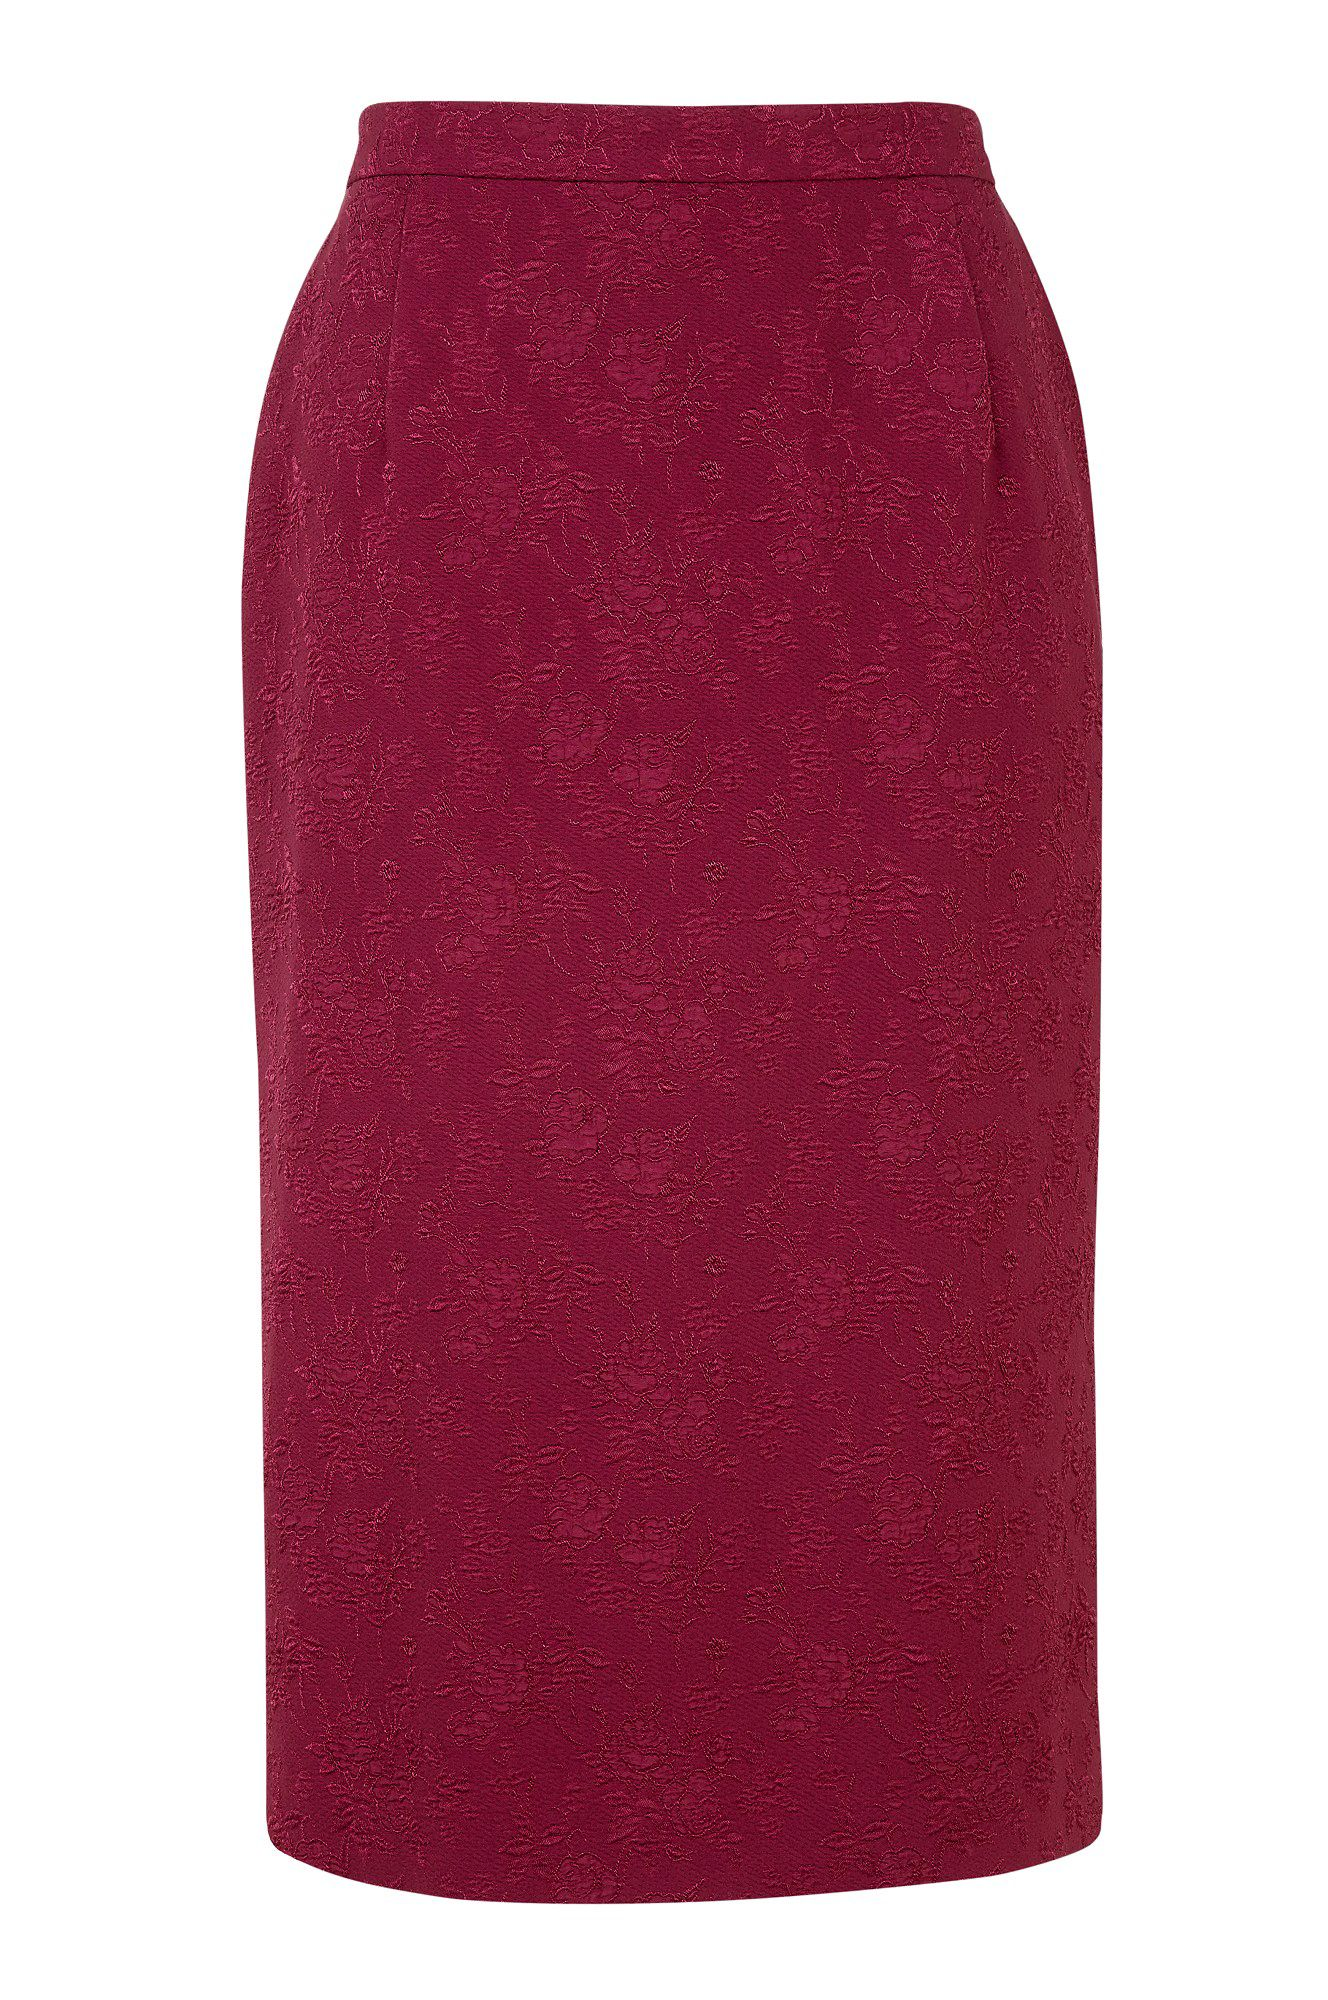 Cloque pencil skirt